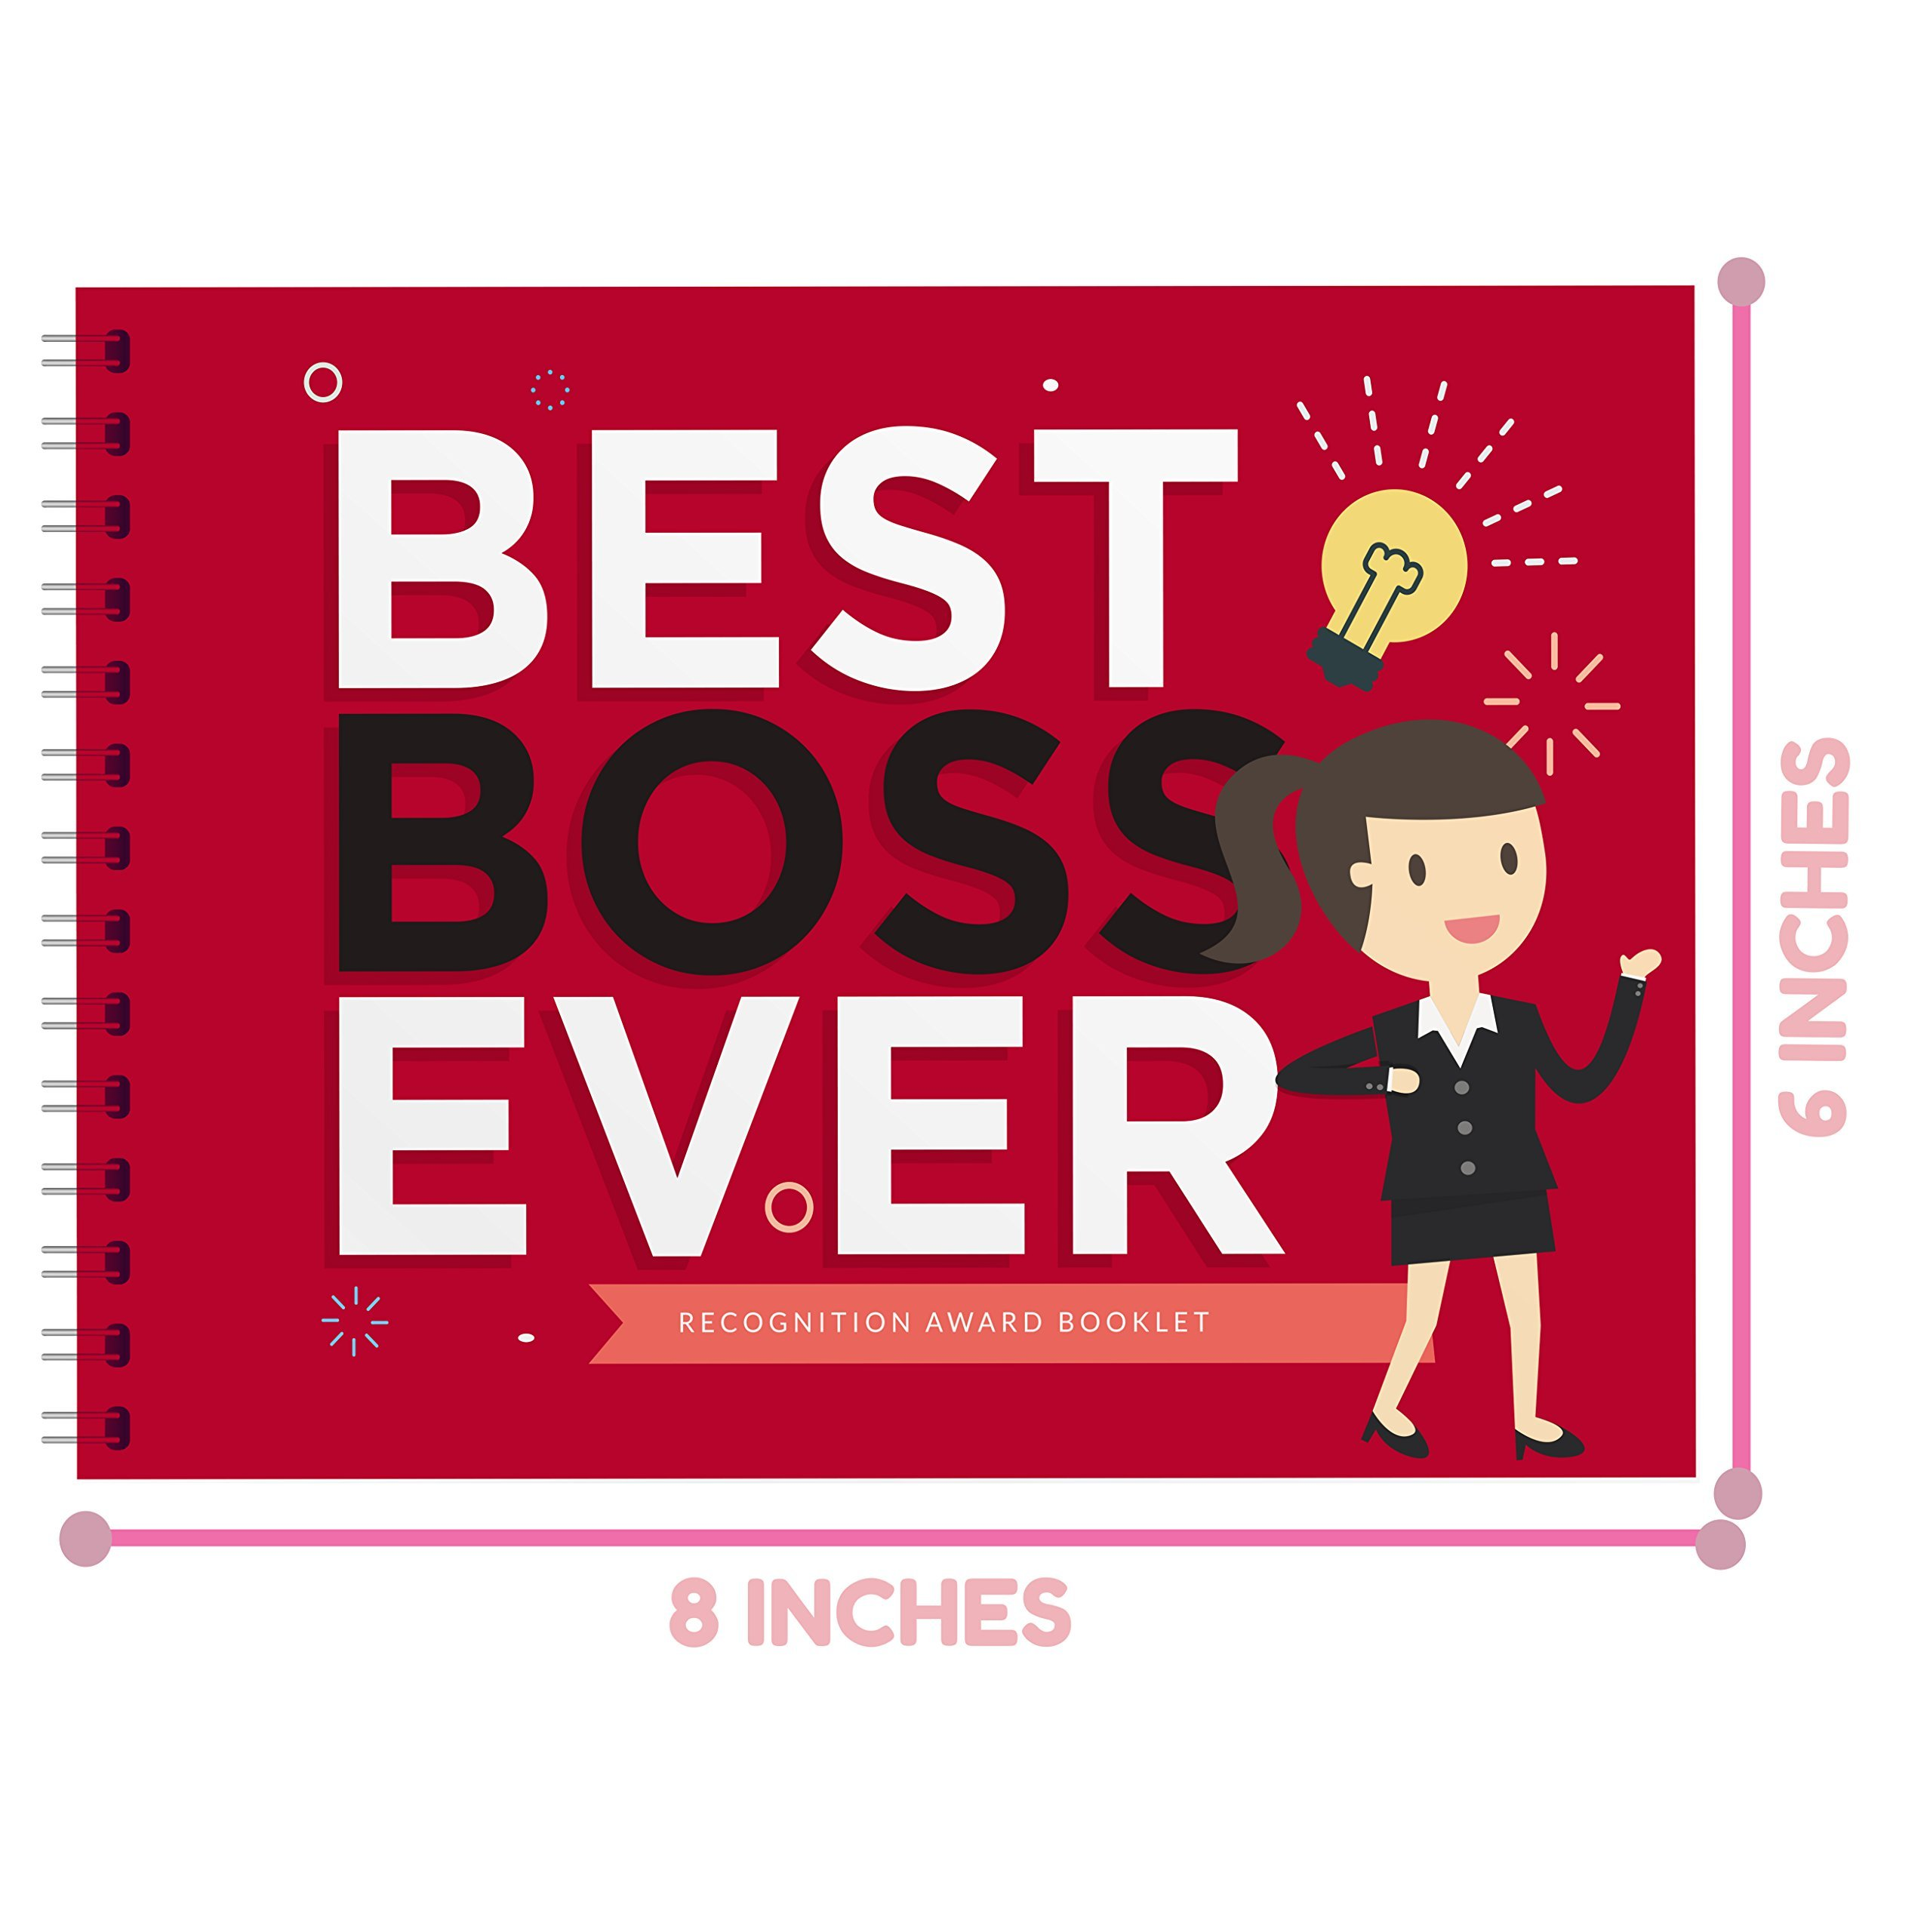 BEST BOSS EVER APPRECIATION GIFT - Recognition Award Booklet - Birthday Gift Idea For The Boss in the Office! Gifts For Worlds Best Female or Male Boss, Manager or Coworker by Little Big Drop (Image #2)